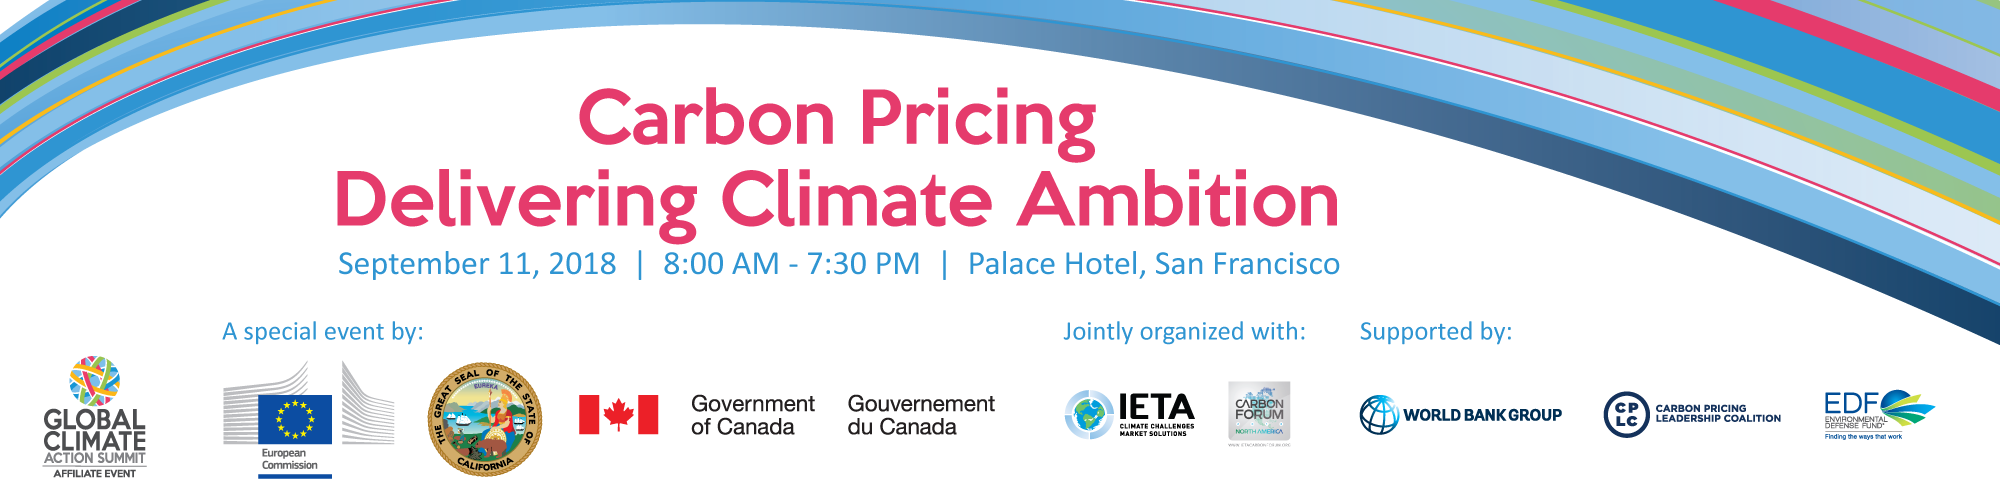 Carbon Pricing Delivering Climate Ambition